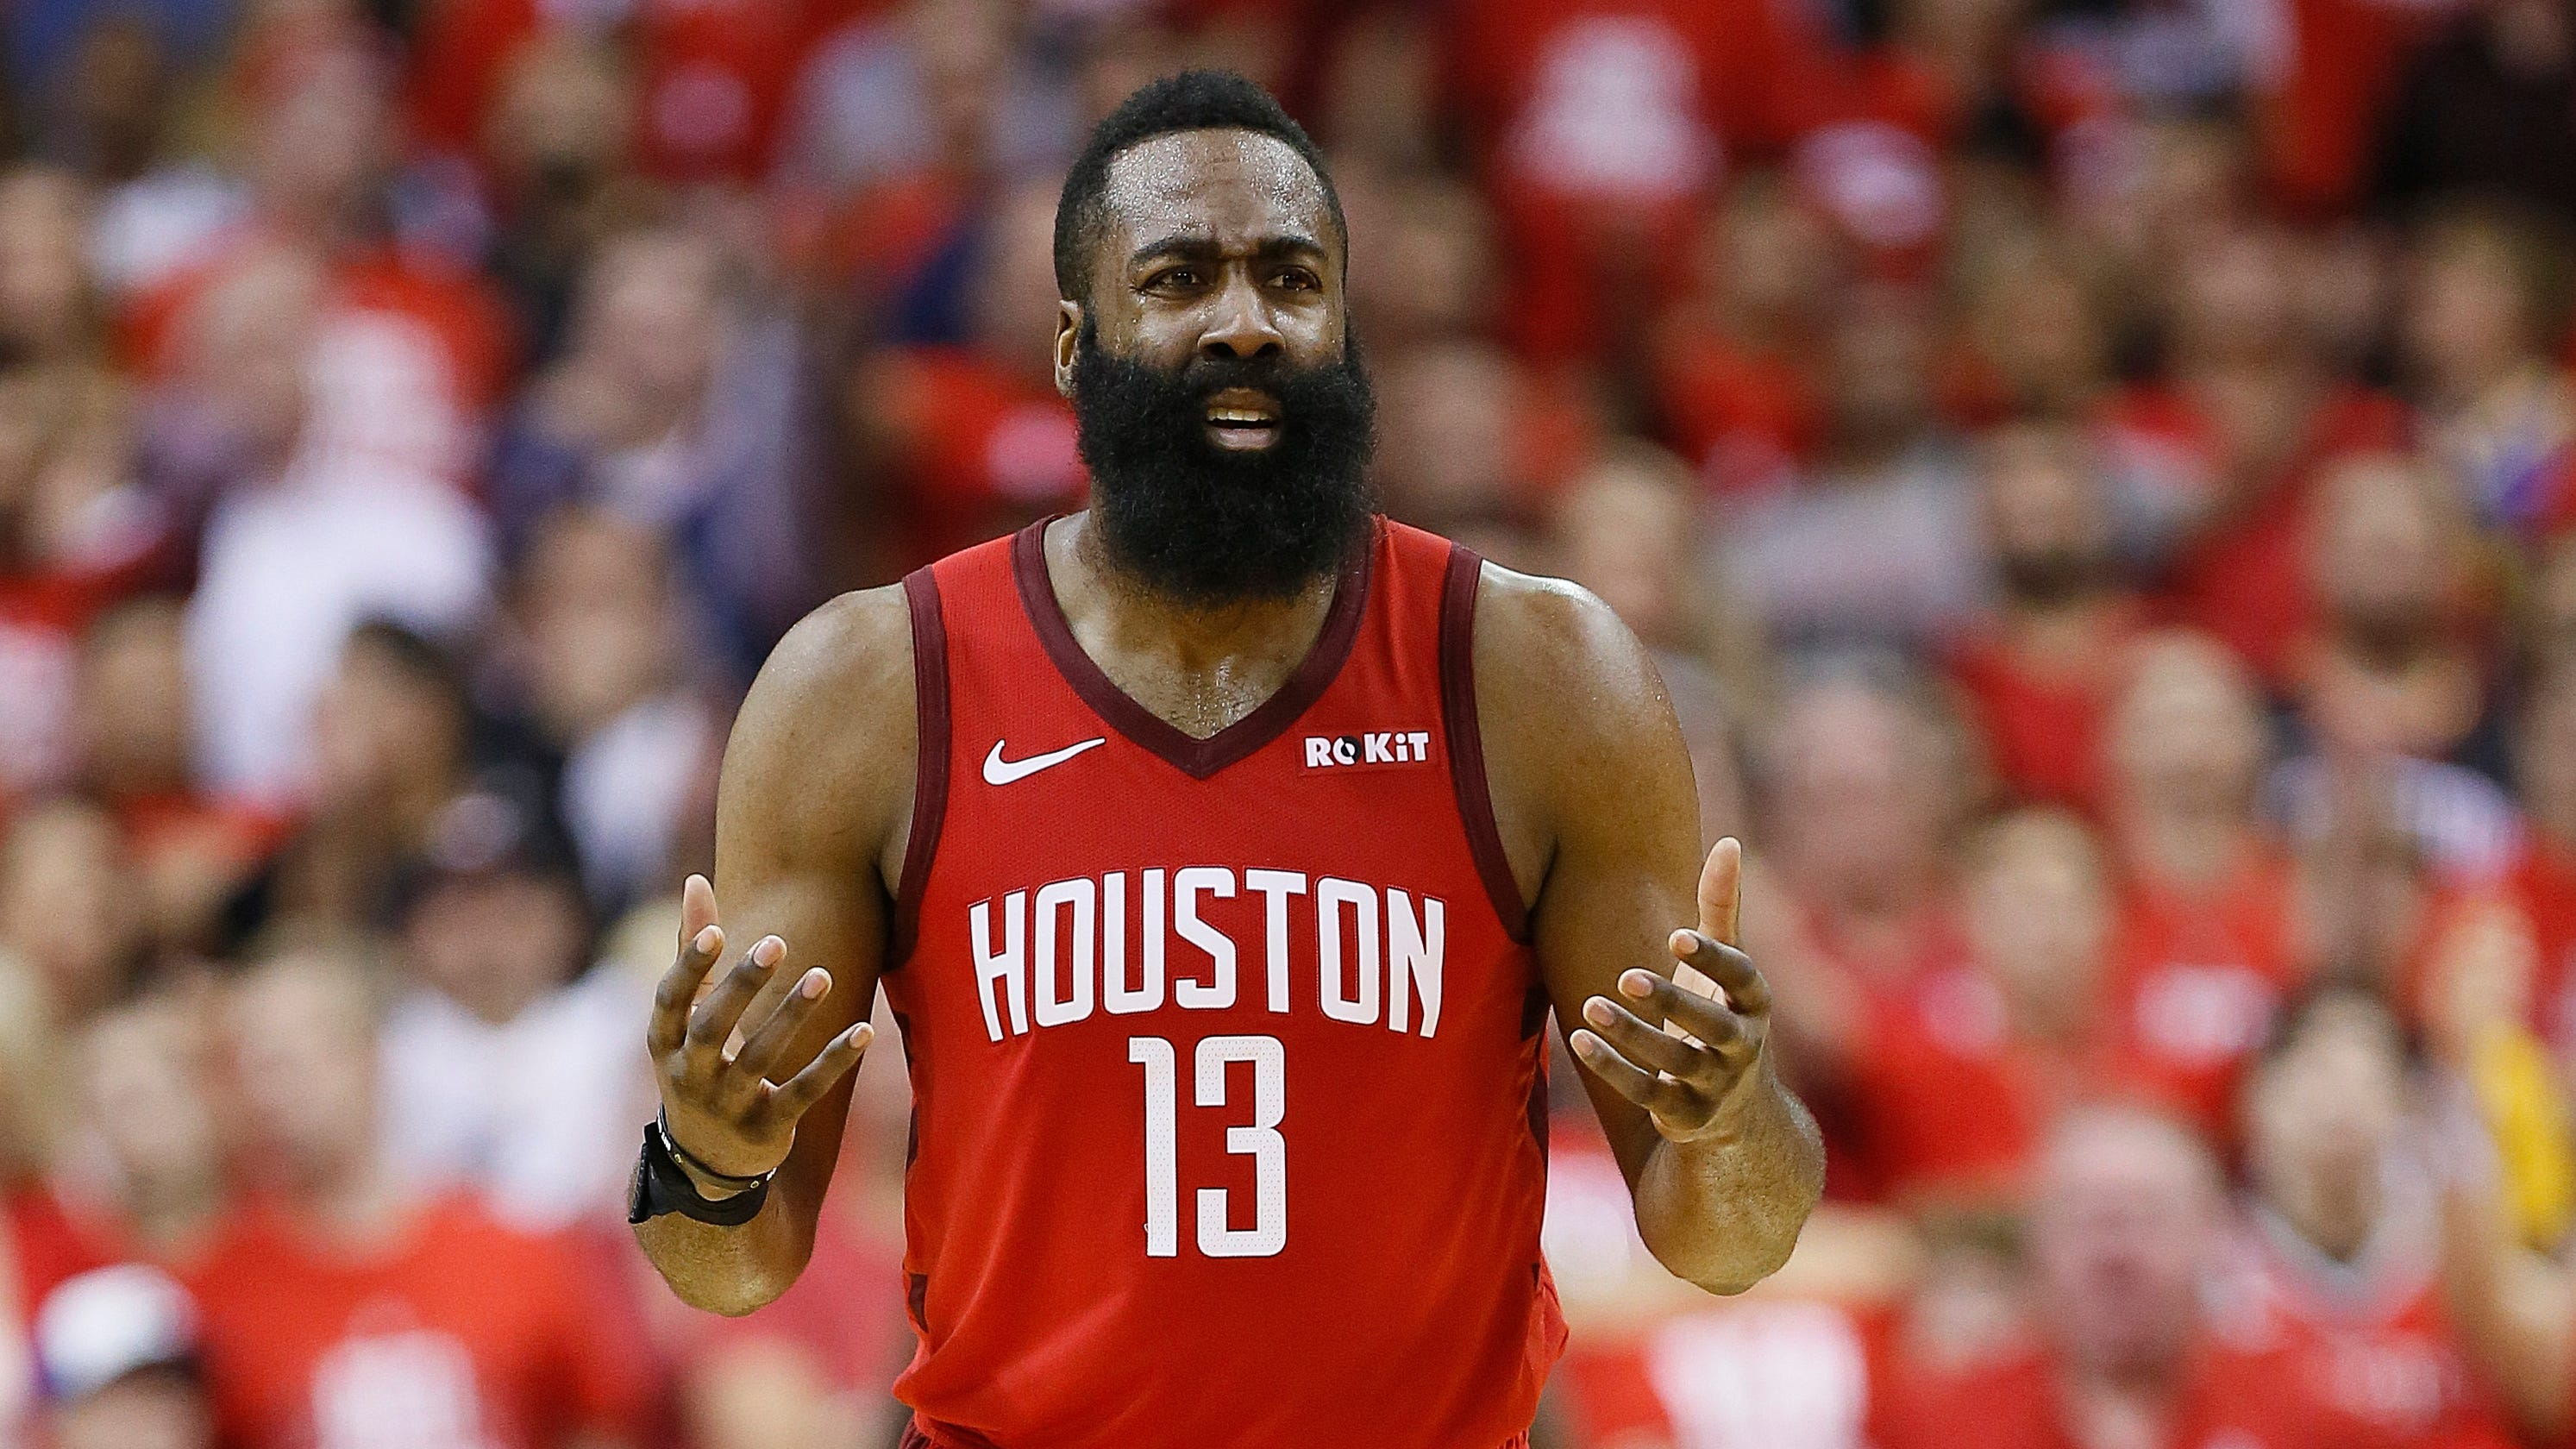 846fb9d22 Houston Rockets have official Twitter account suspended